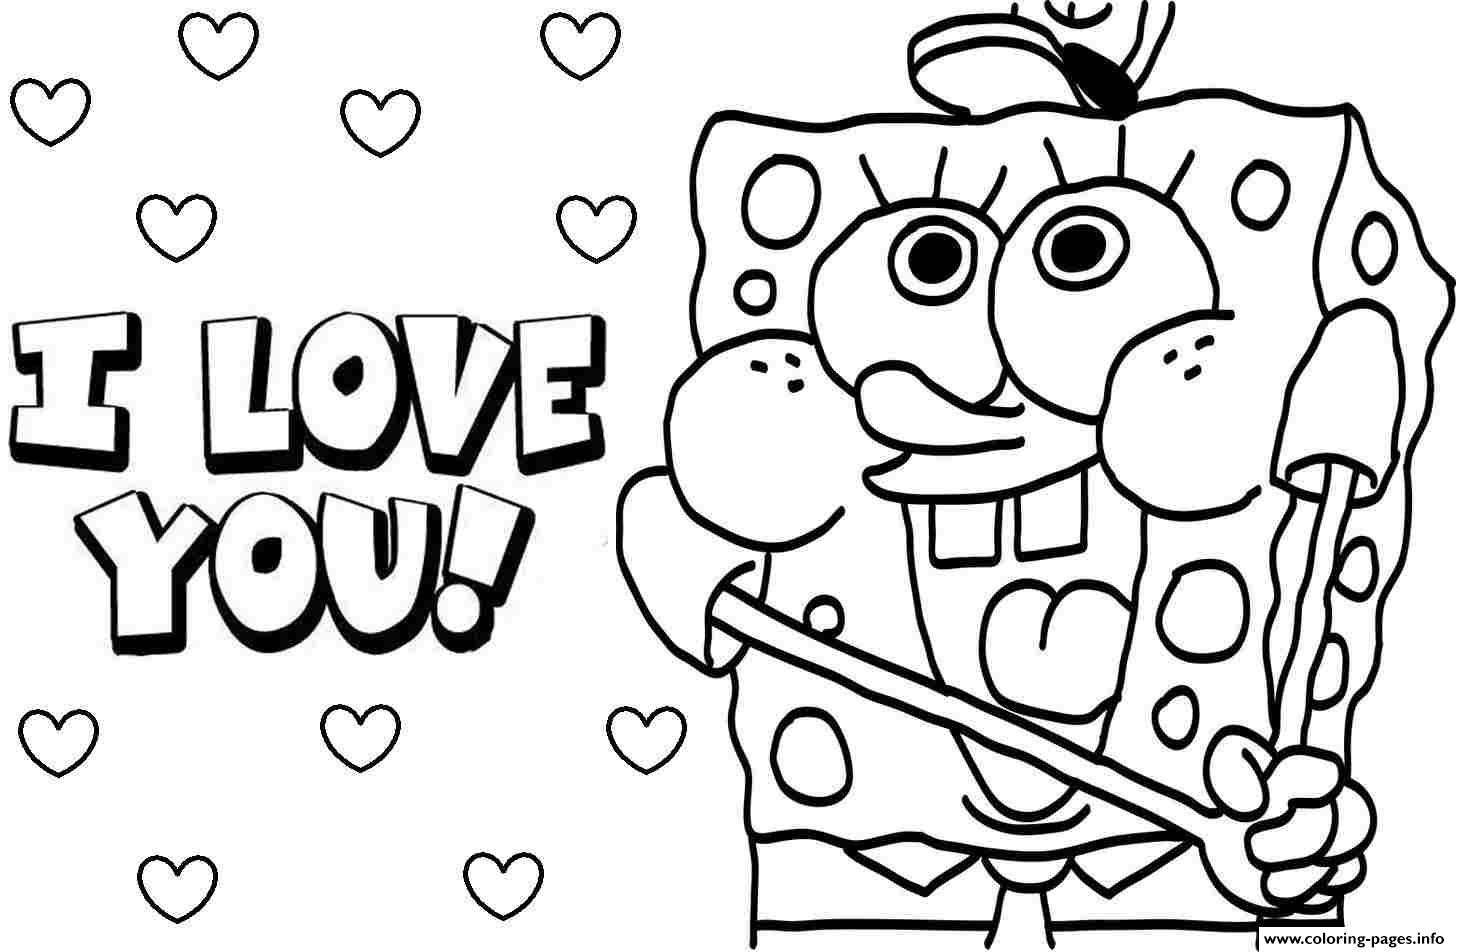 Valentines Day Coloring Pages For Adults Valentine Day Coloring Sheets Colouring For Beatiful Happy Valenti